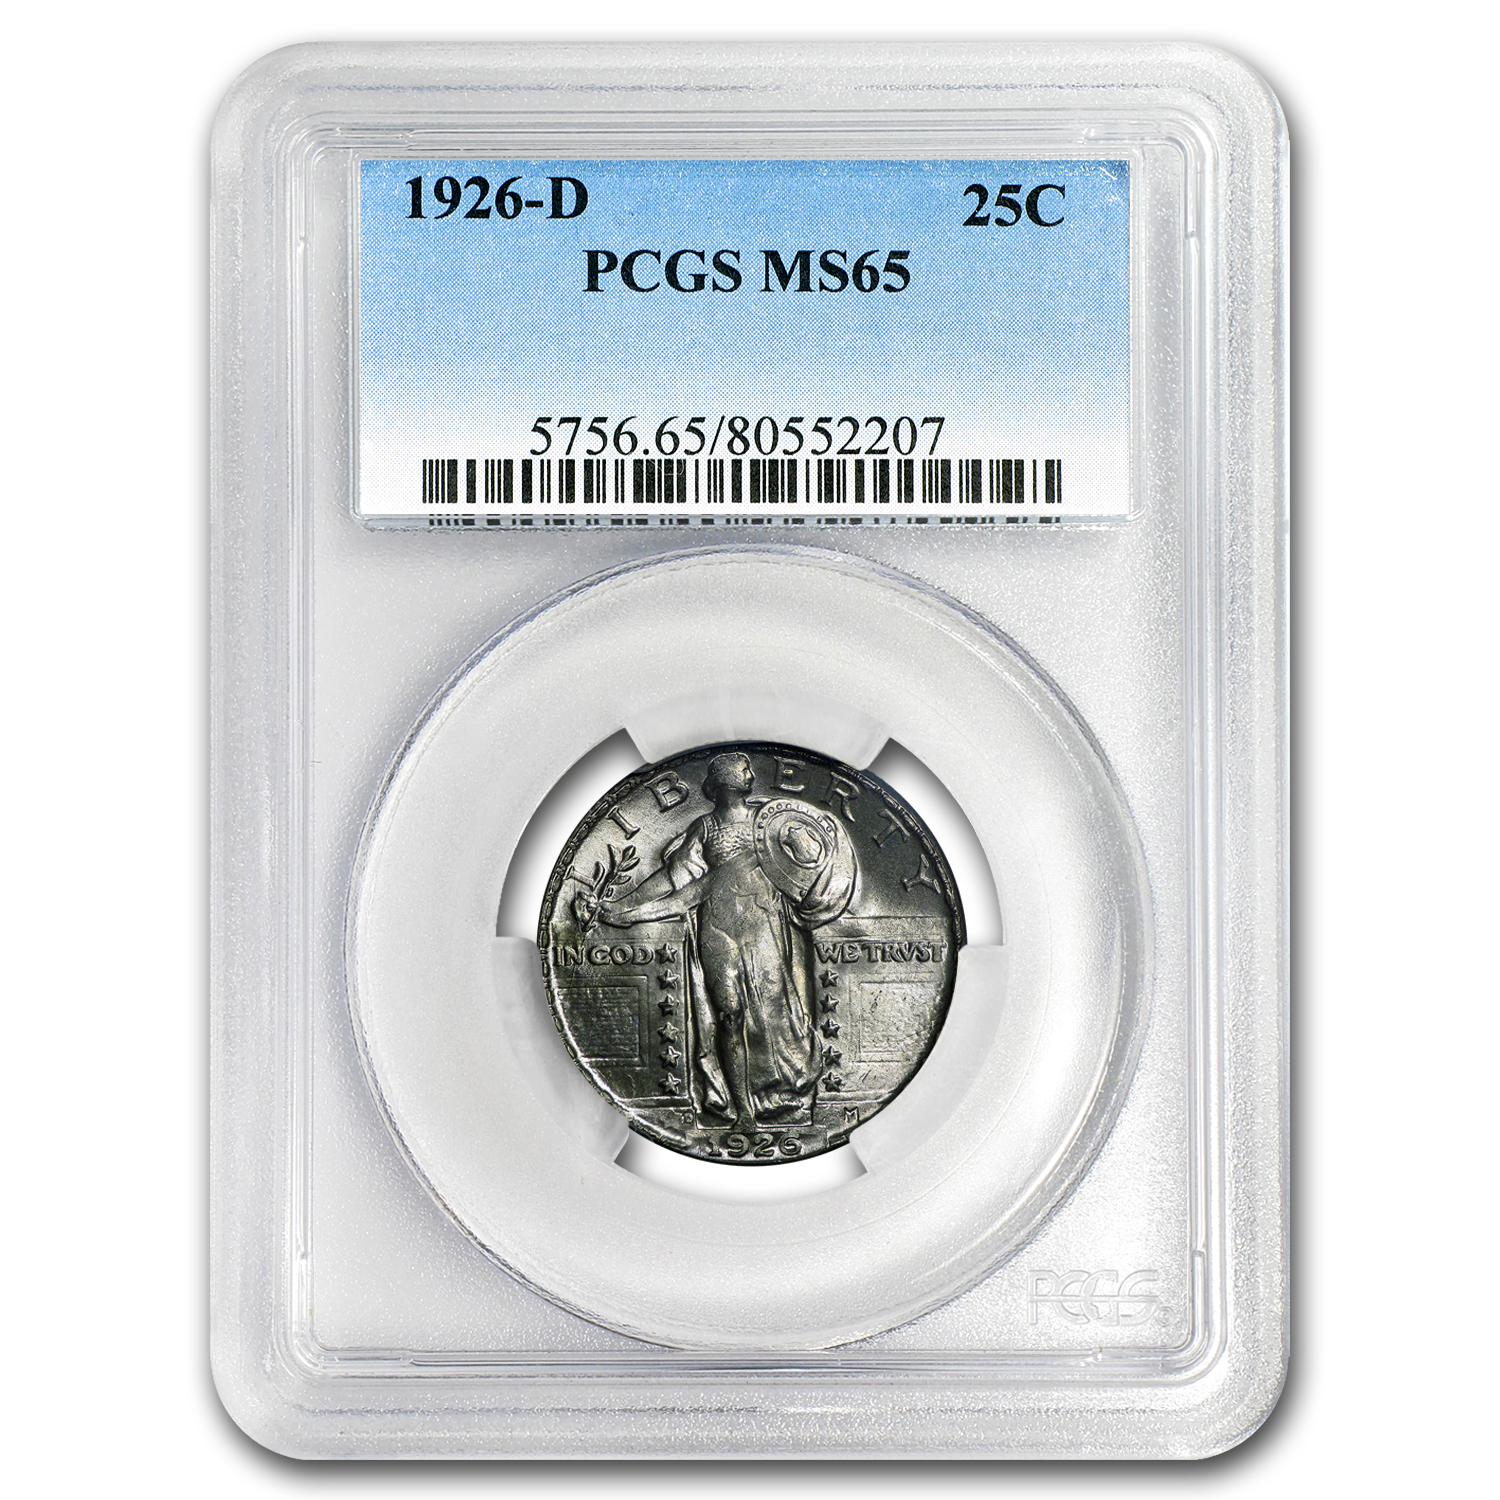 1926-D Standing Liberty Quarter MS-65 PCGS